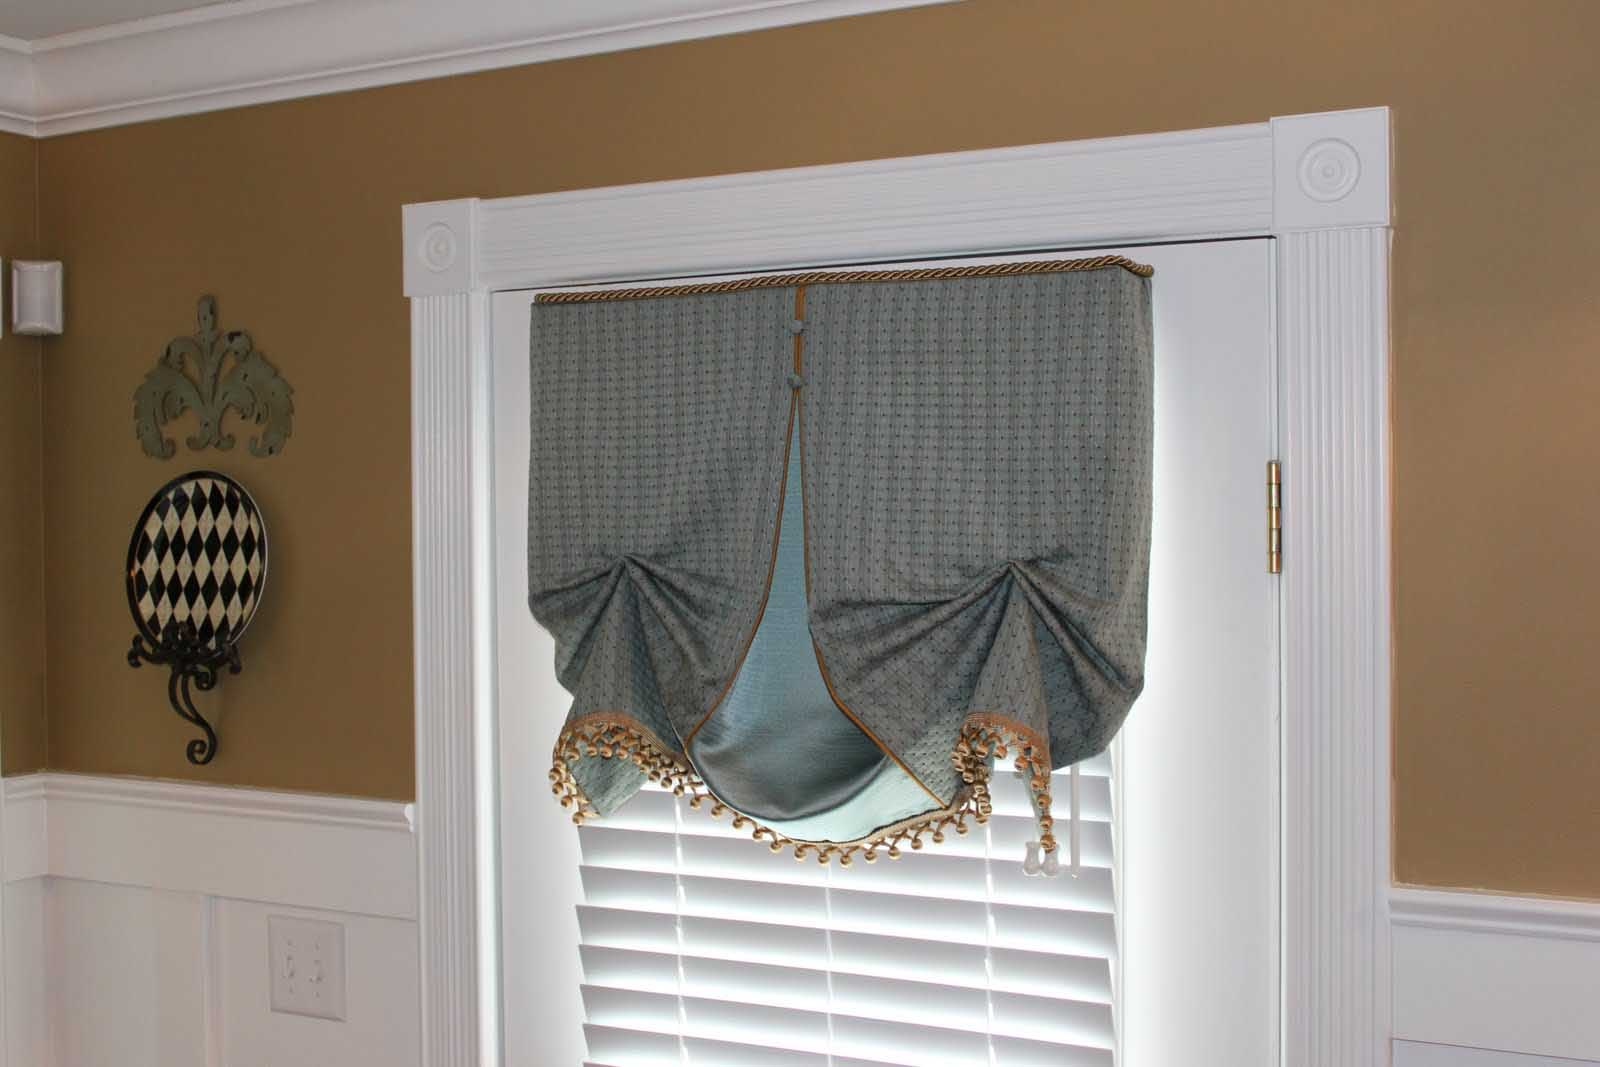 Kitchen door window treatments window treatments design for Kitchen door with window